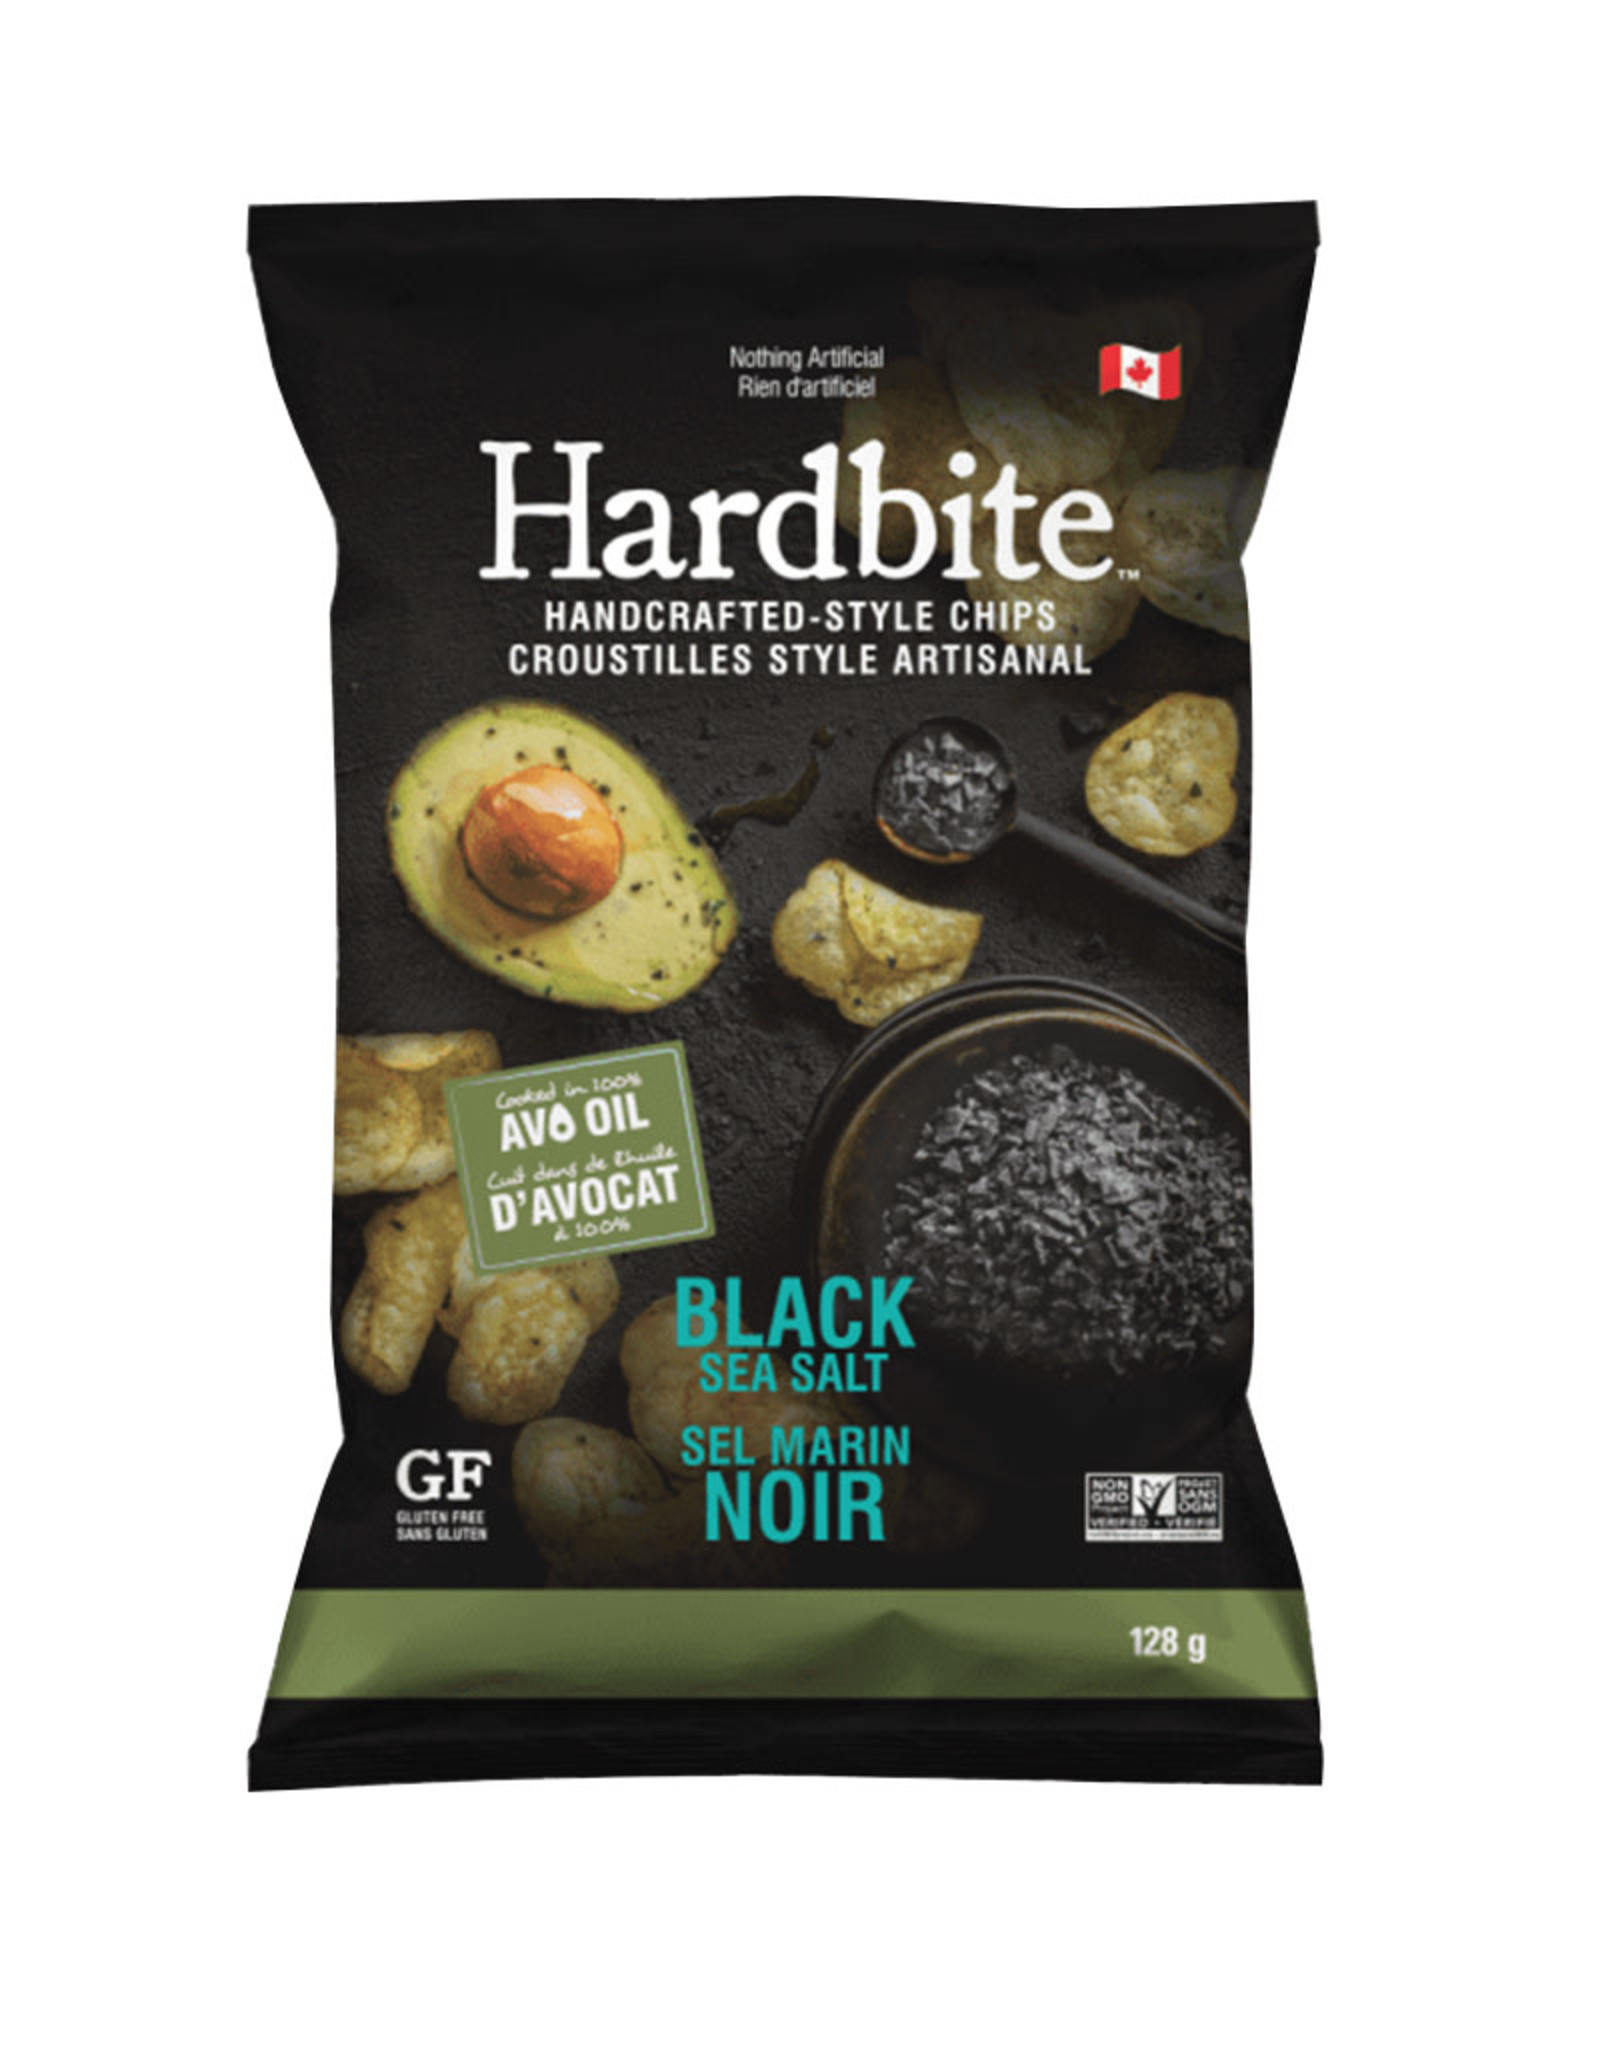 Hardbites Hardbite - Chips, Avocado Oil Black Sea Salt (128g)